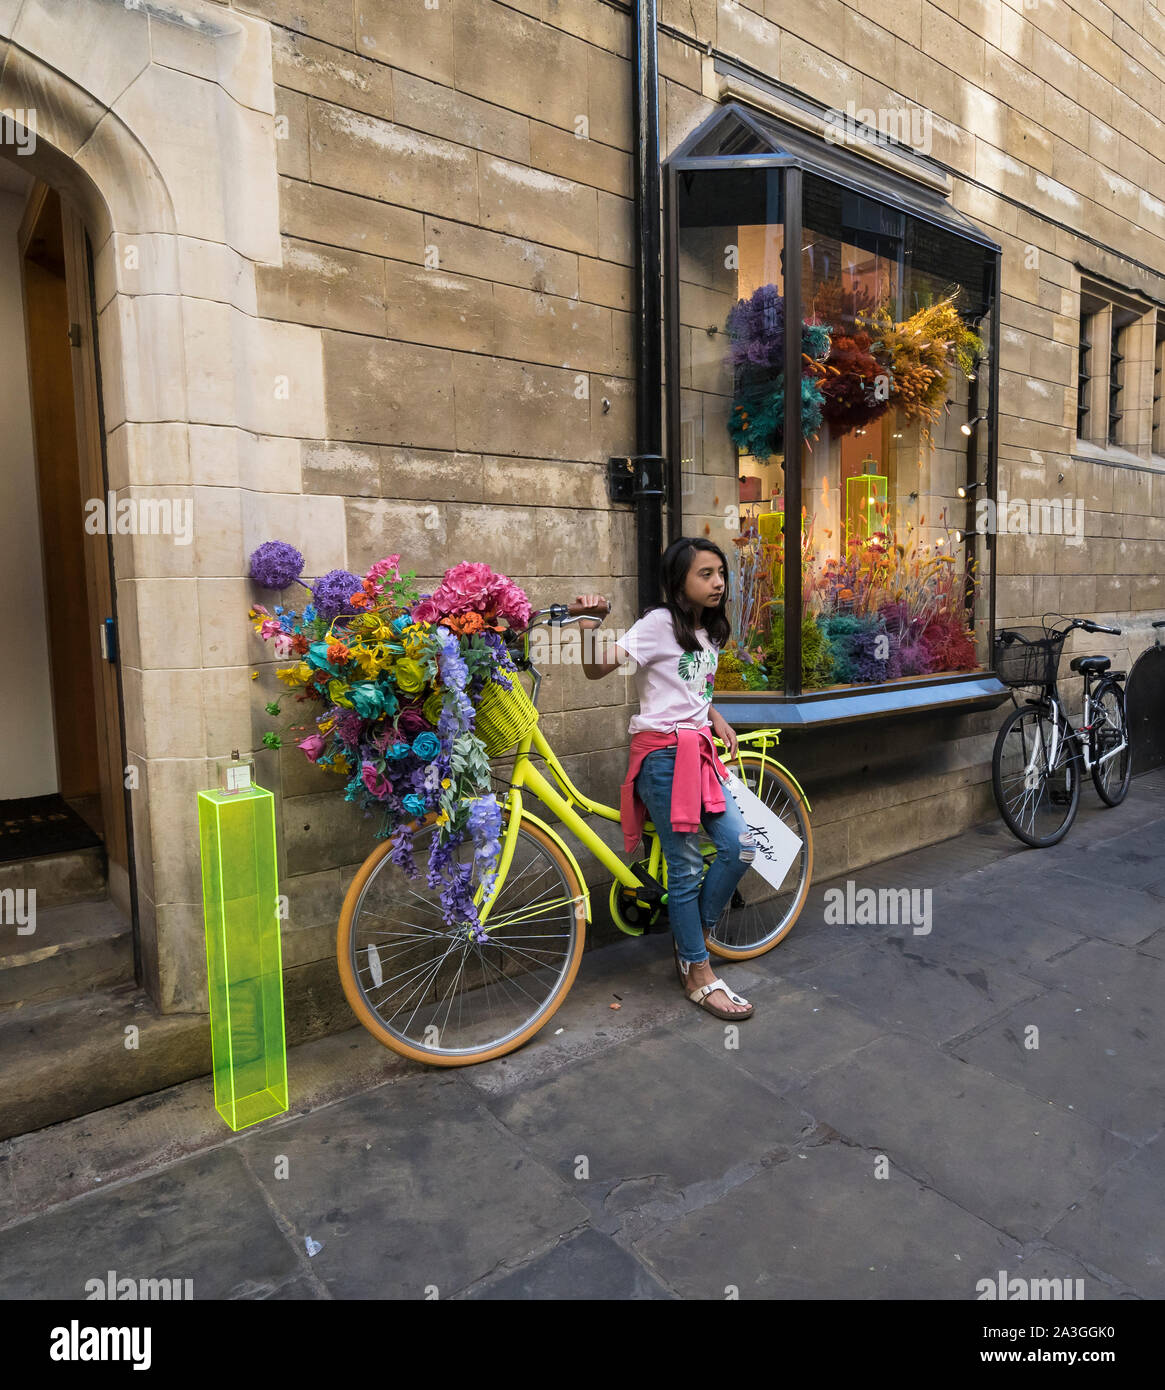 Young girl posing for photo by advertisement bike Cambridge 2019 Stock Photo